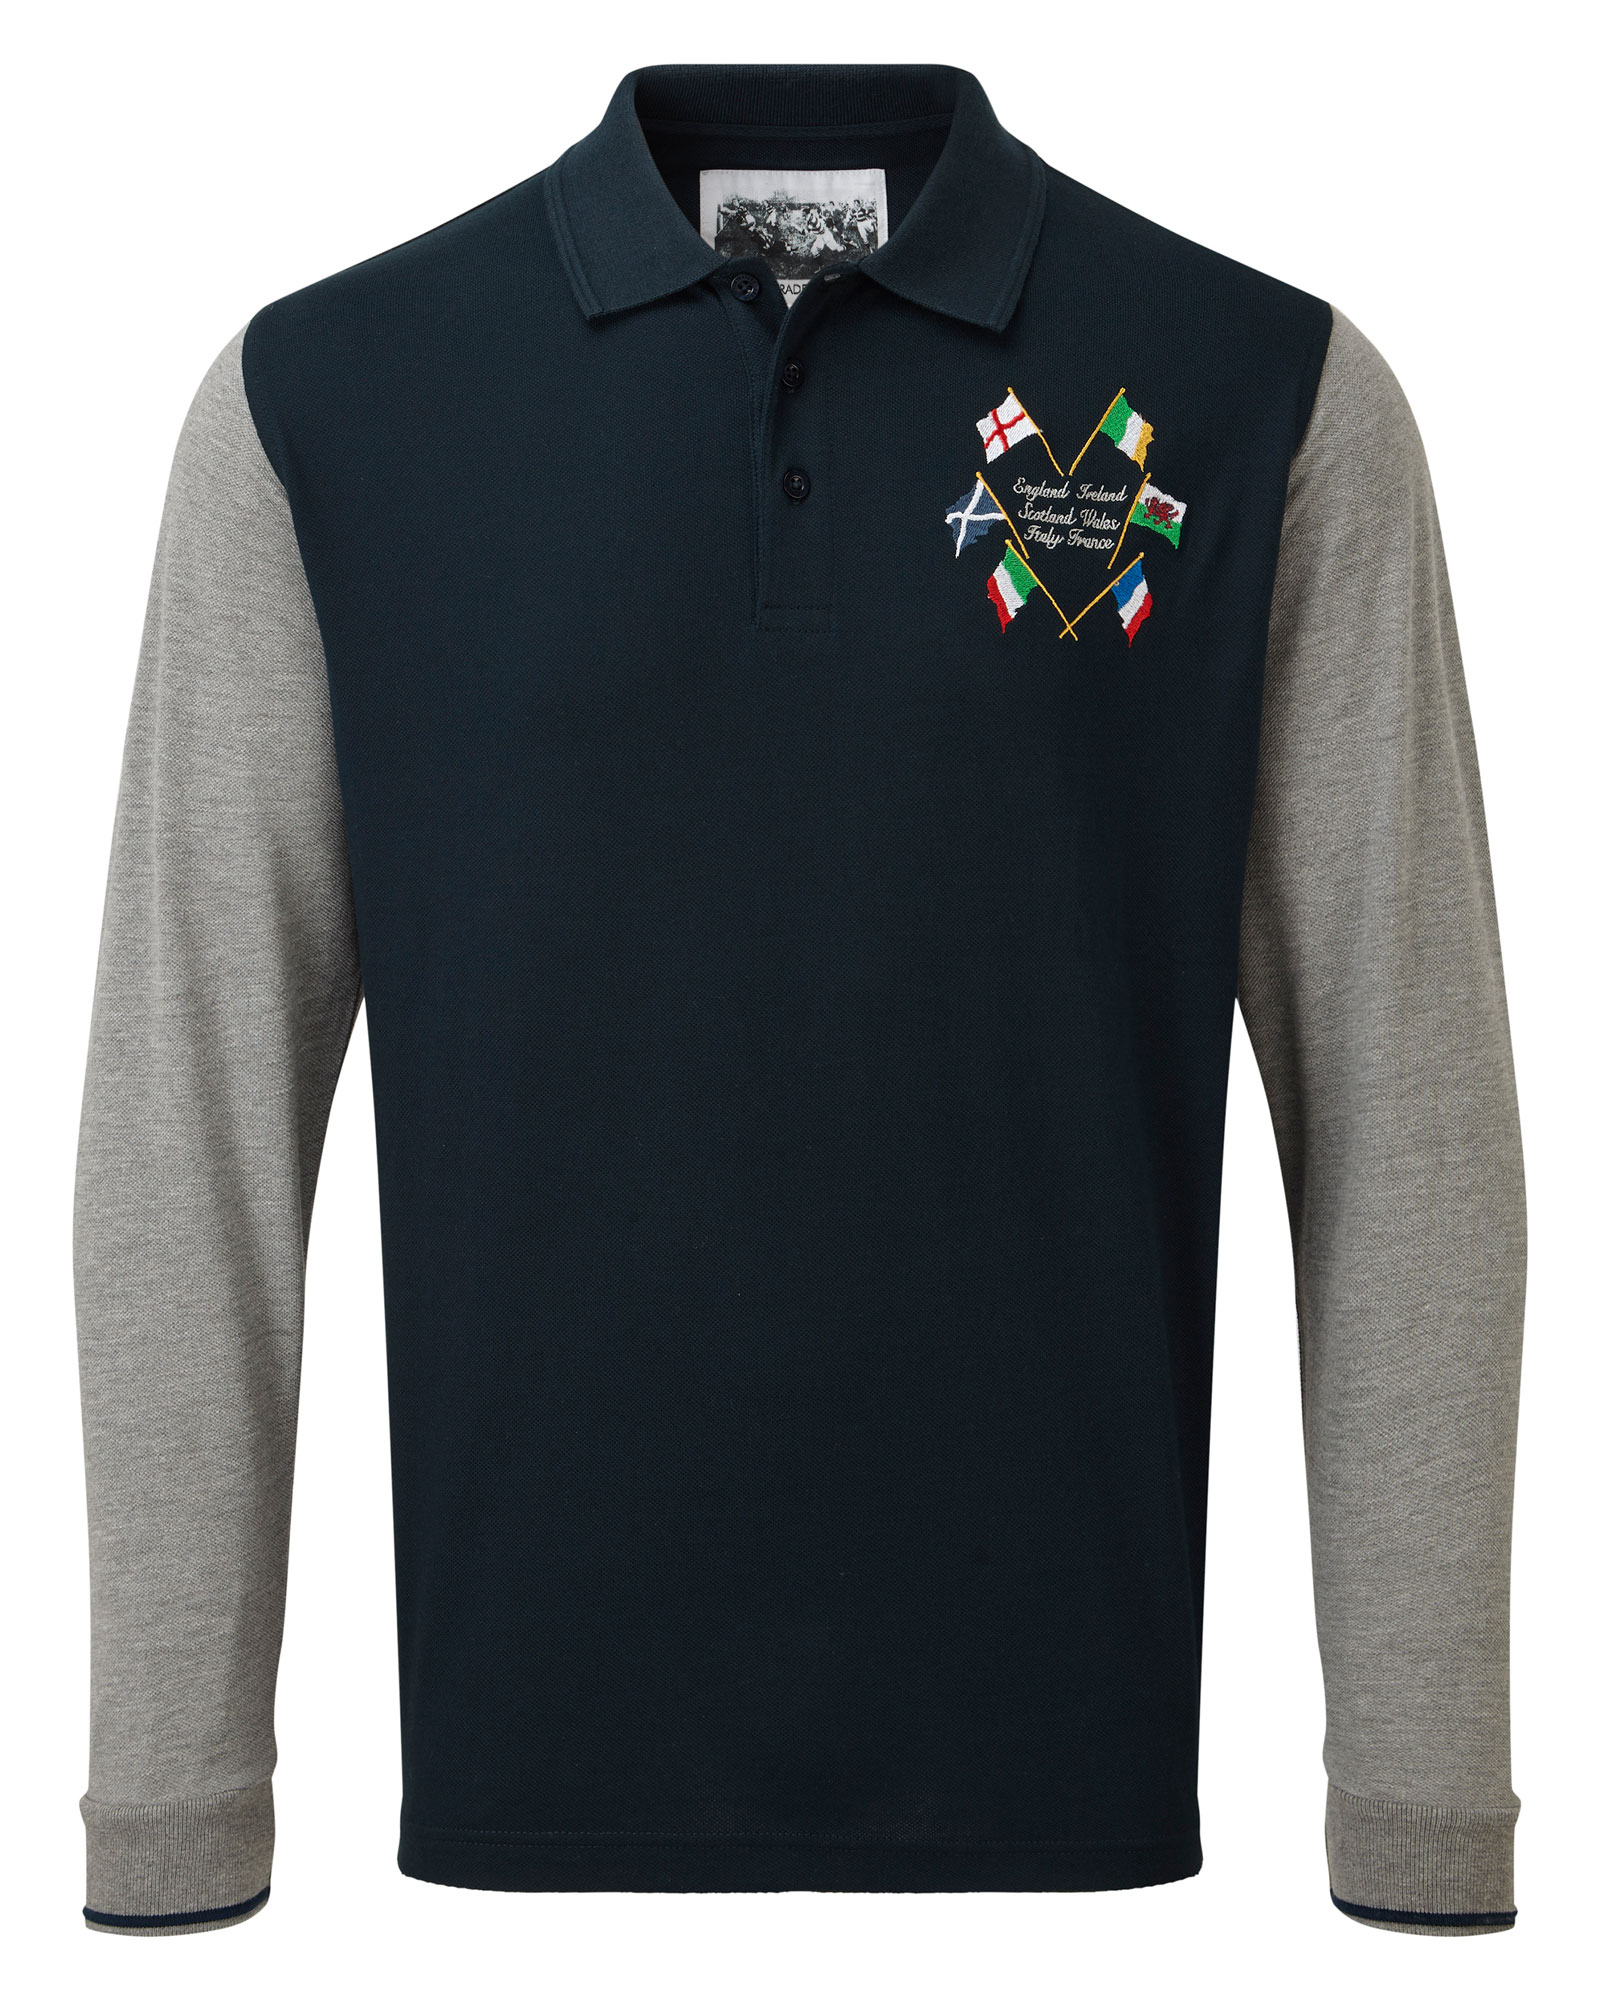 29c722099fc 6 Nations Long Sleeve Embroidered Polo Shirt at Cotton Traders